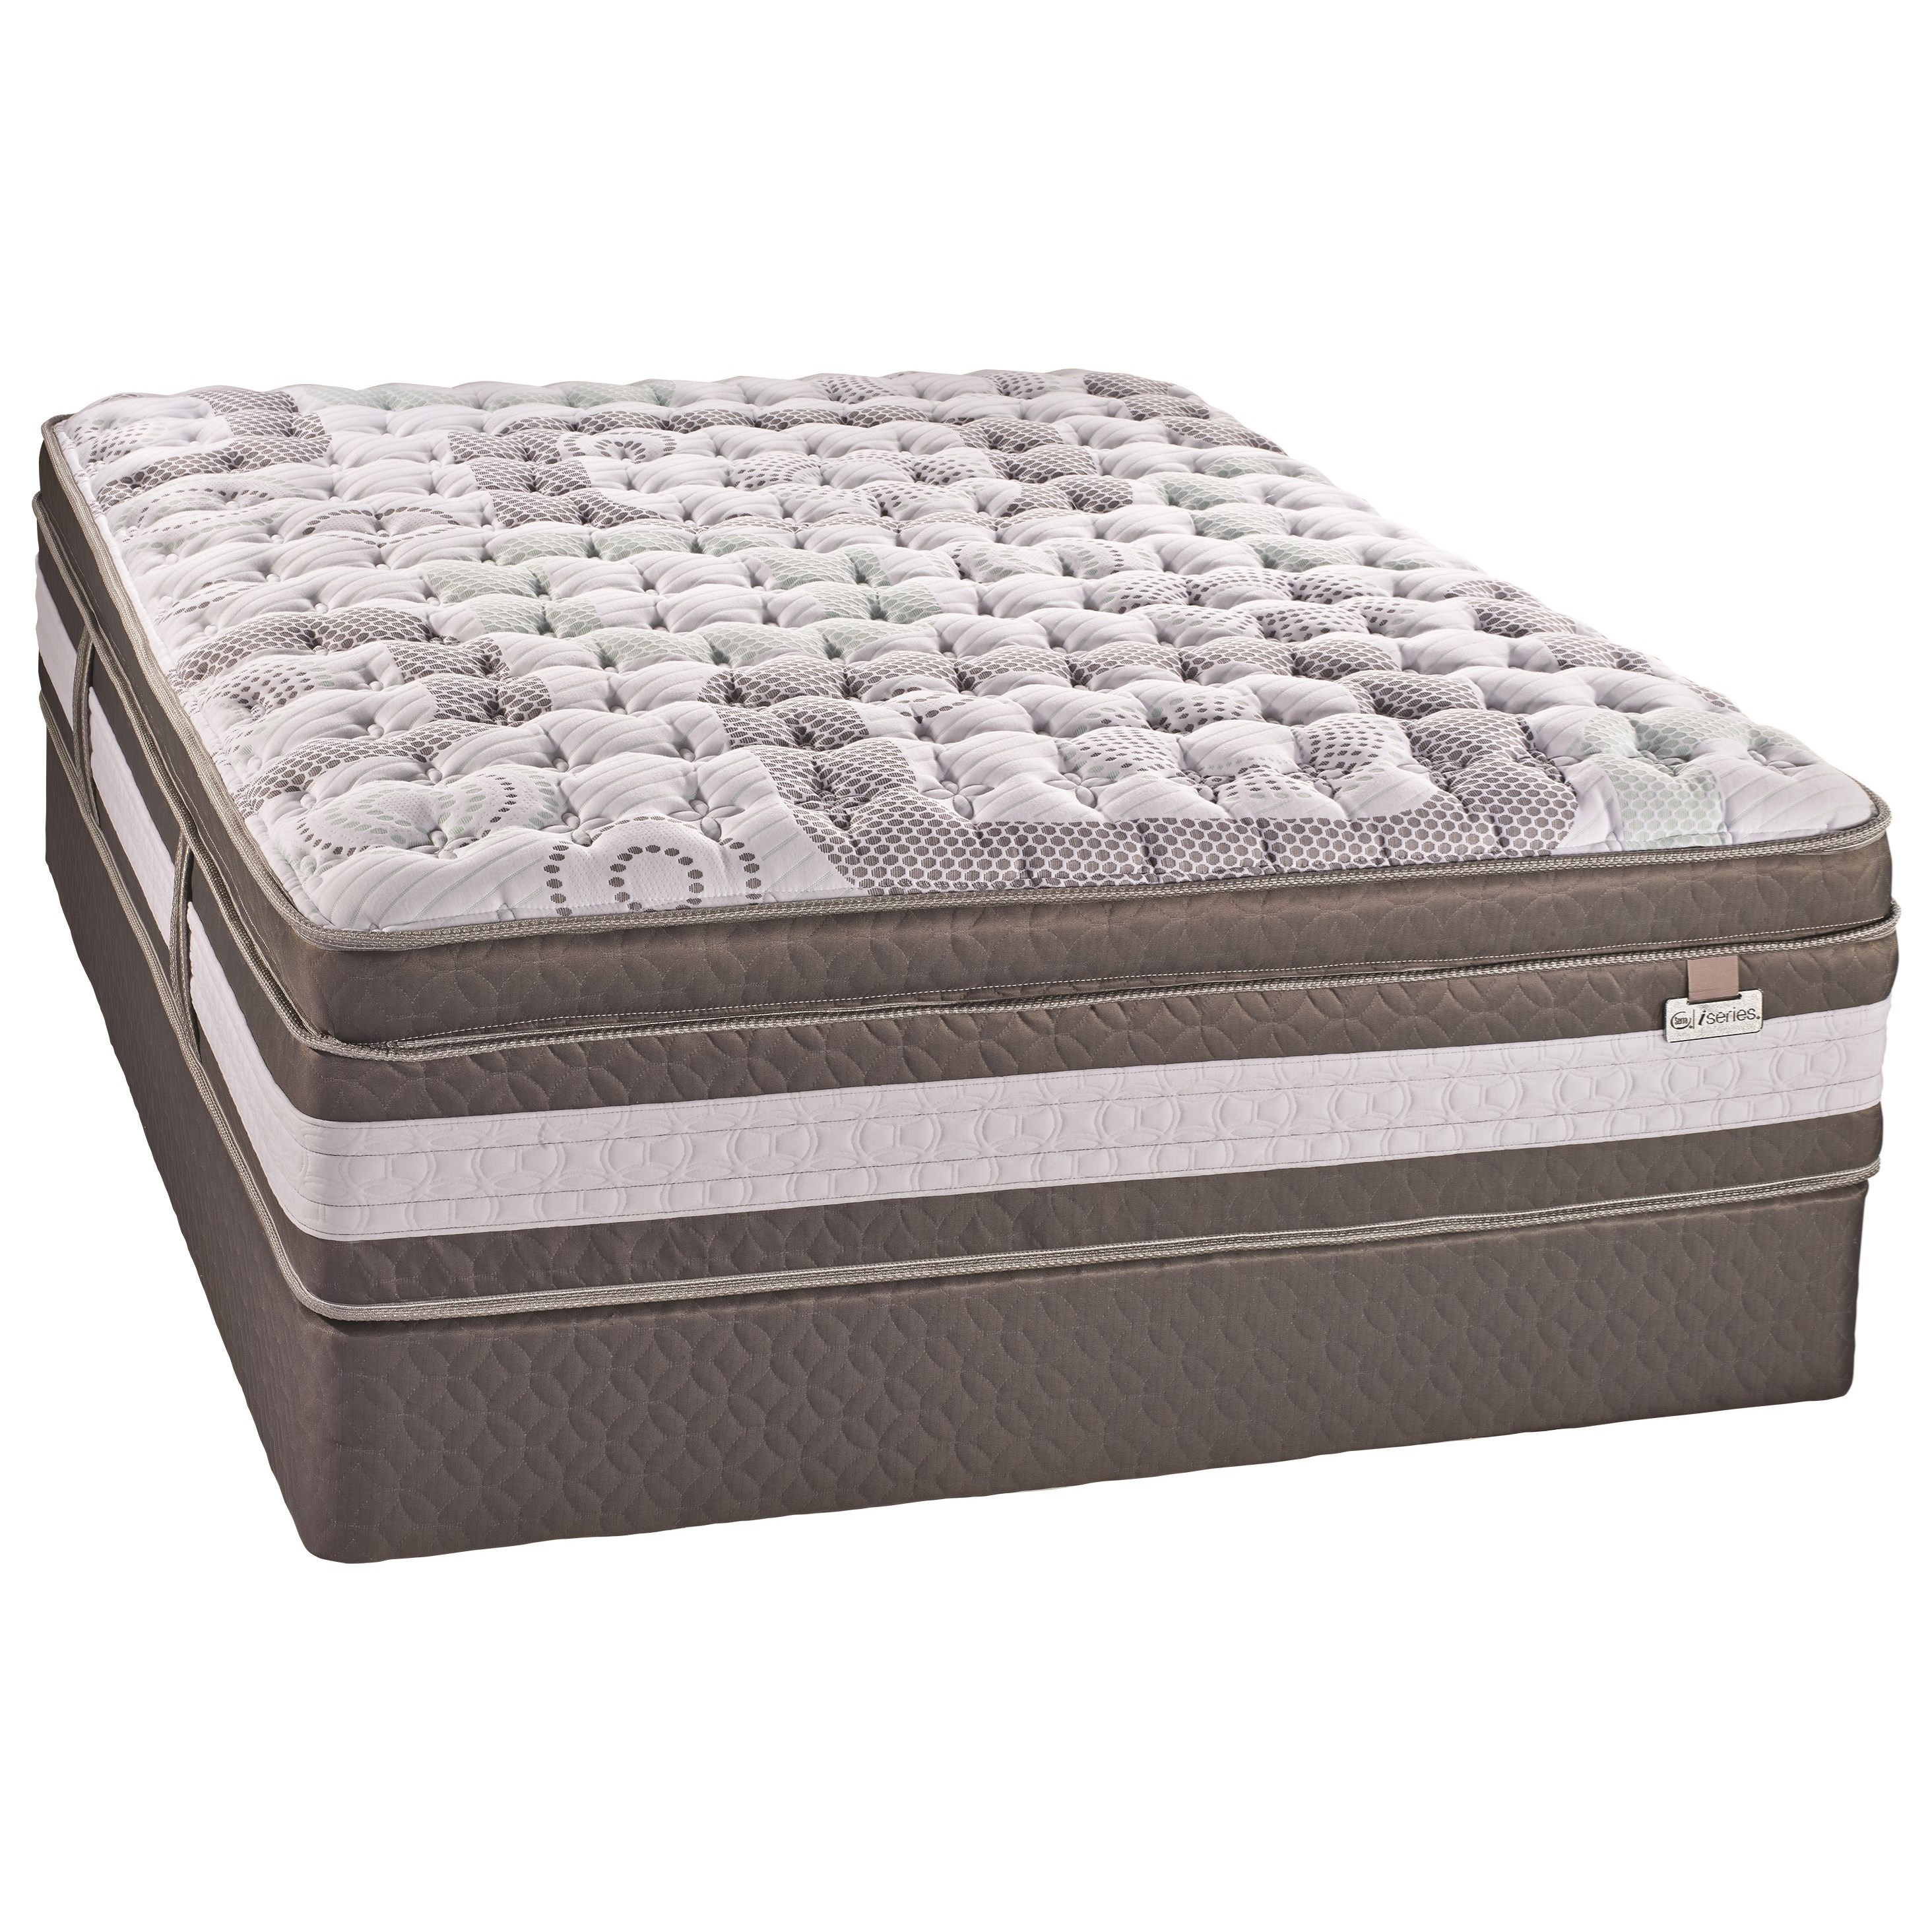 com iseries goodbed reviews serta picture mattress mattresses